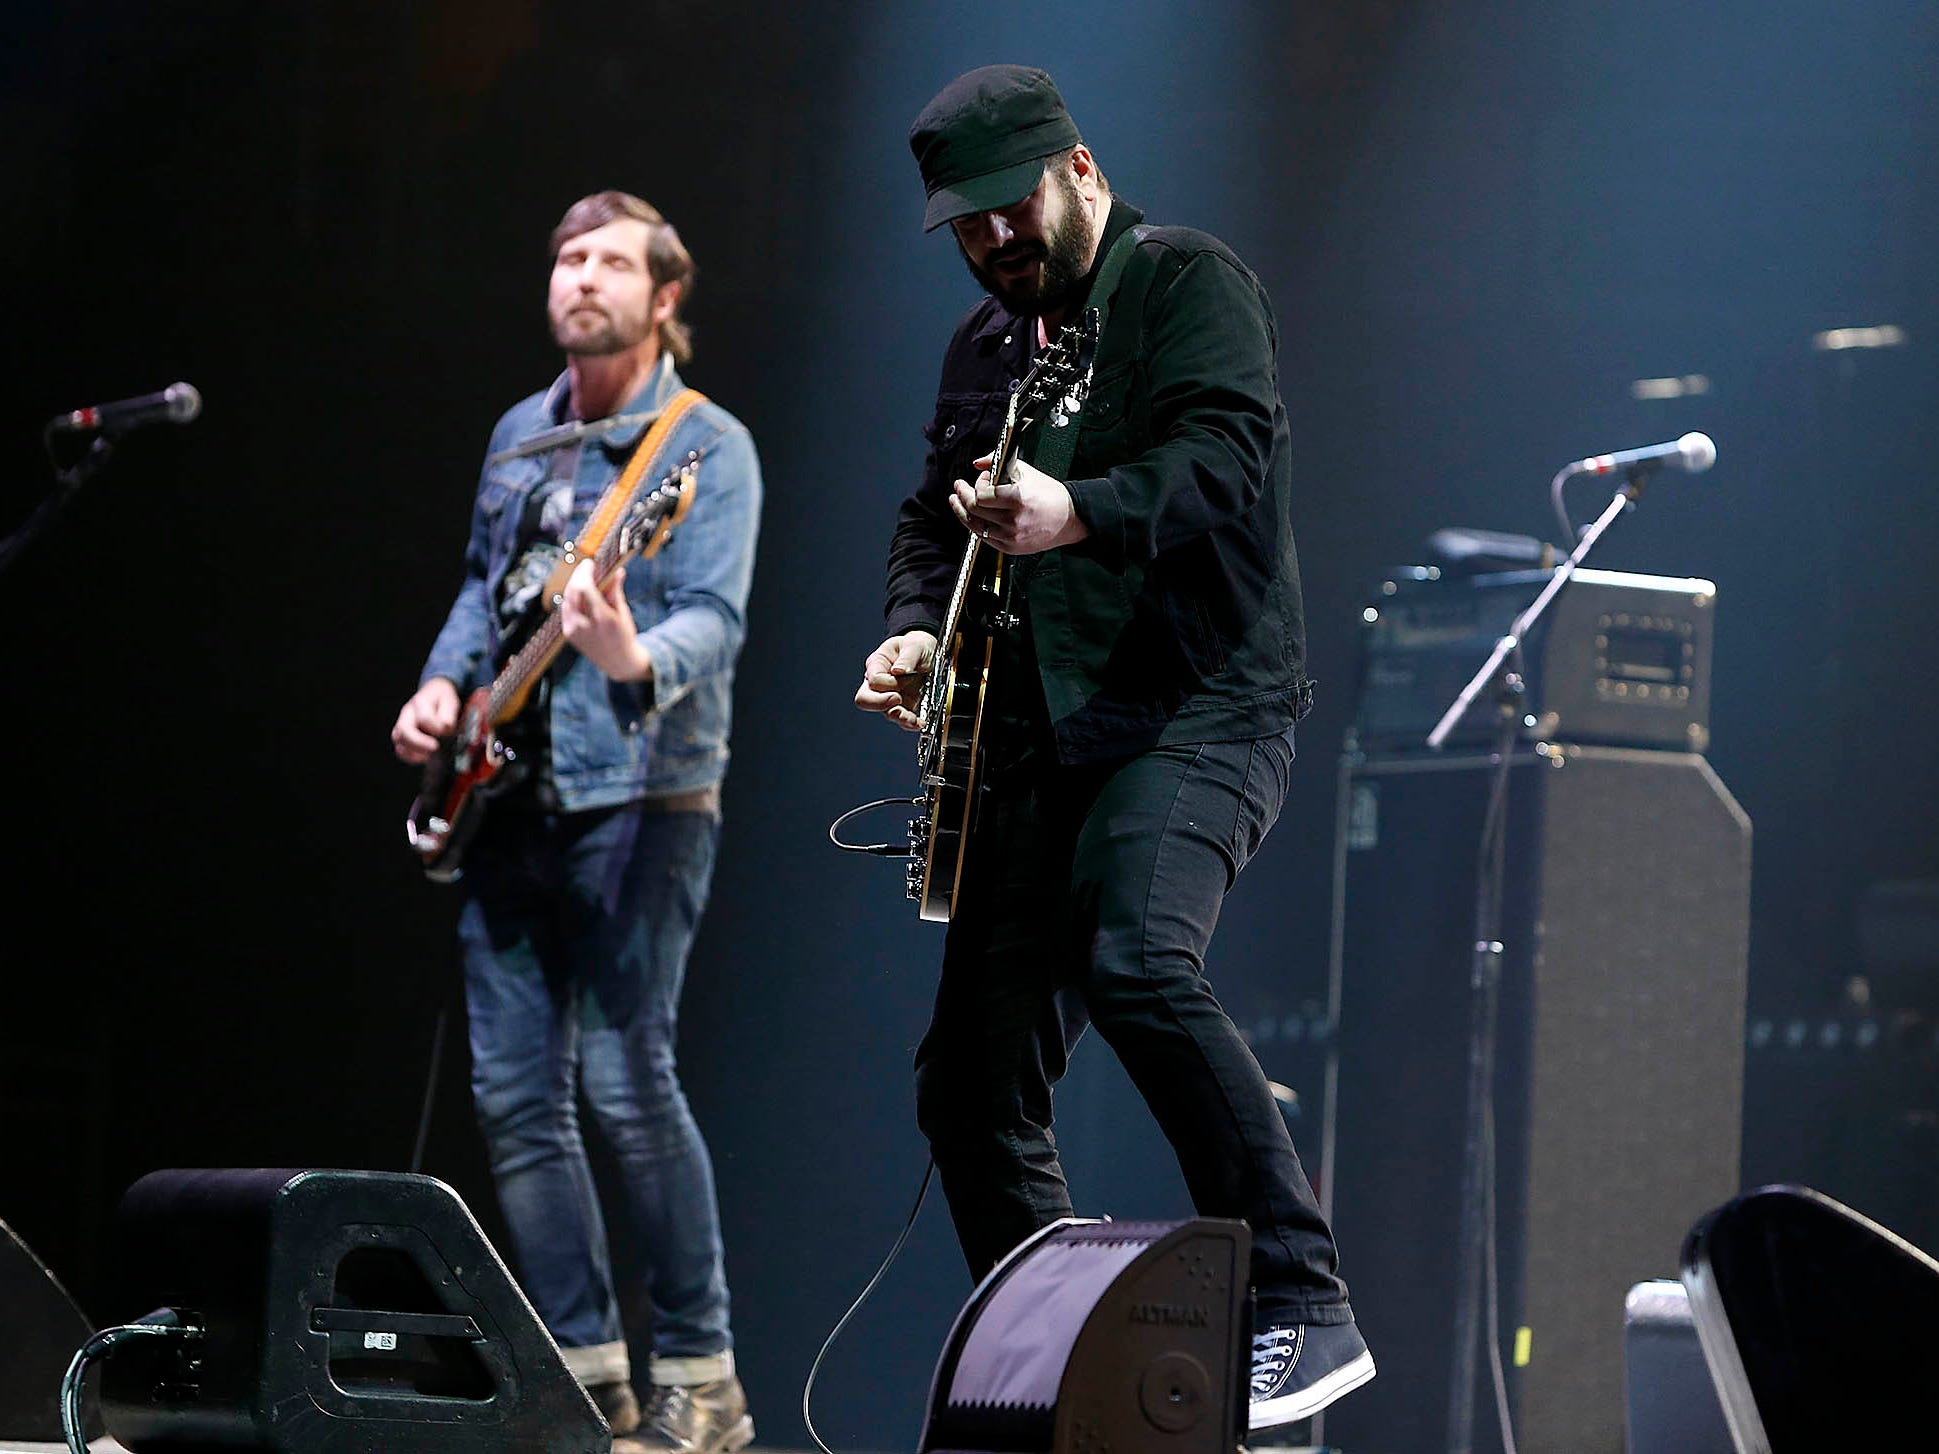 The Record Company open for Bob Seger & The Silver Bullet Band during their Roll Me Away - Final Tour stop at Talking Stick Resort Arena in Phoenix on Friday, Feb. 15, 2019. (Photo by Ralph Freso for azcentral.com)